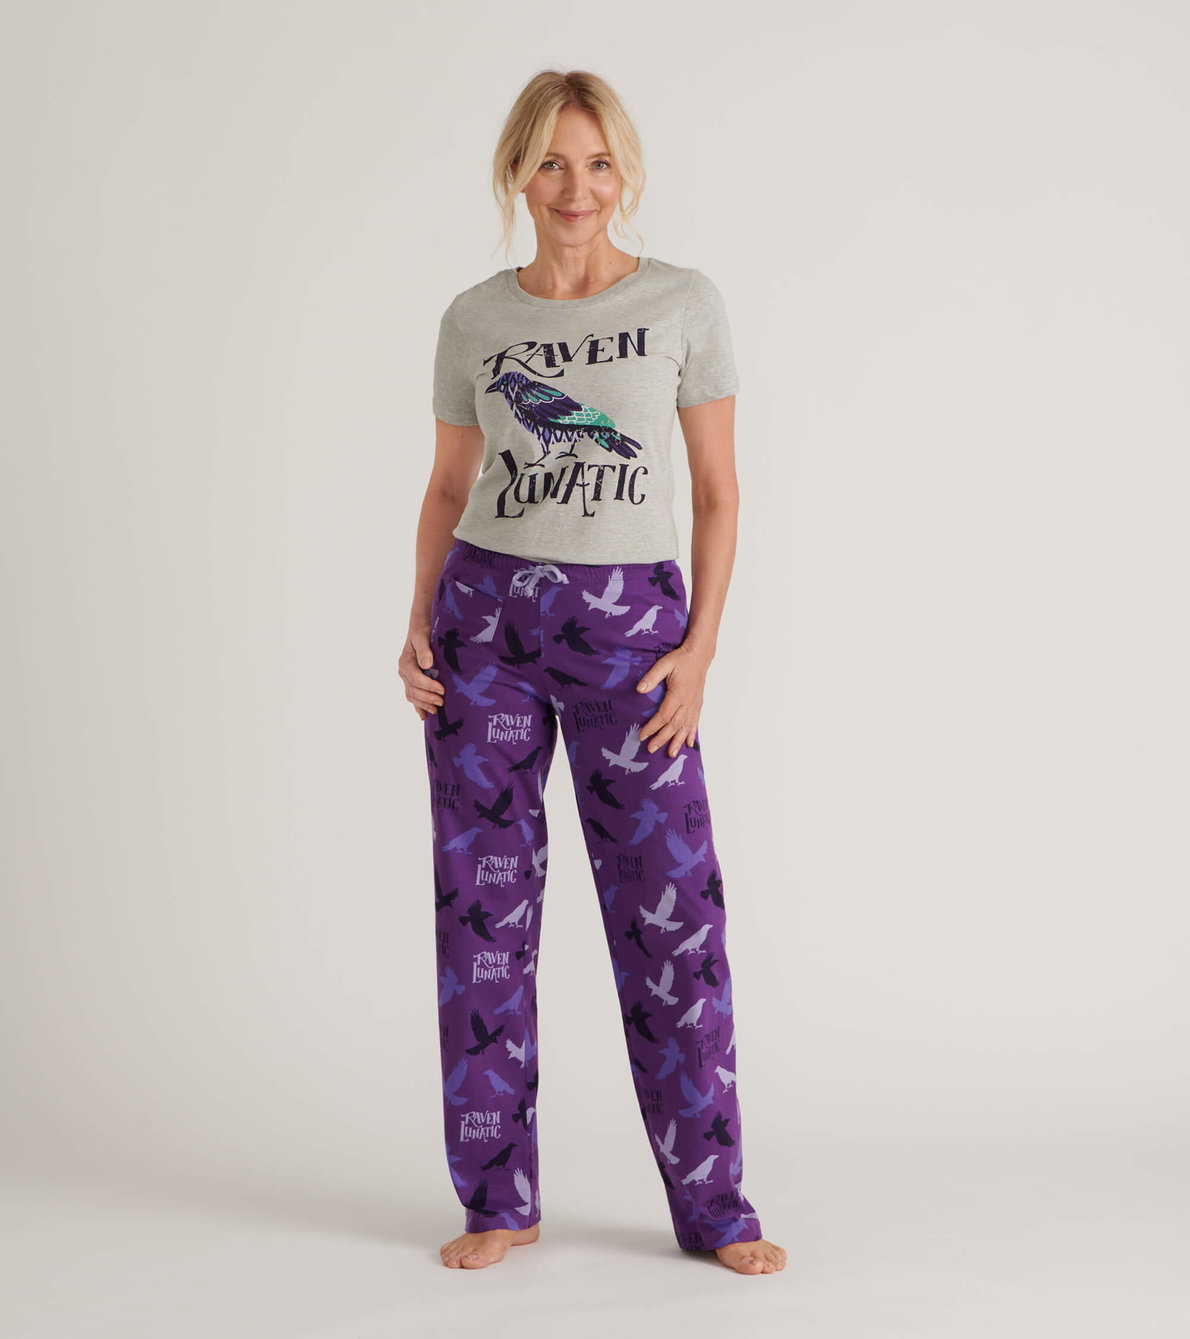 View larger image of Raven Lunatic Women's Tee and Pants Pajama Separates